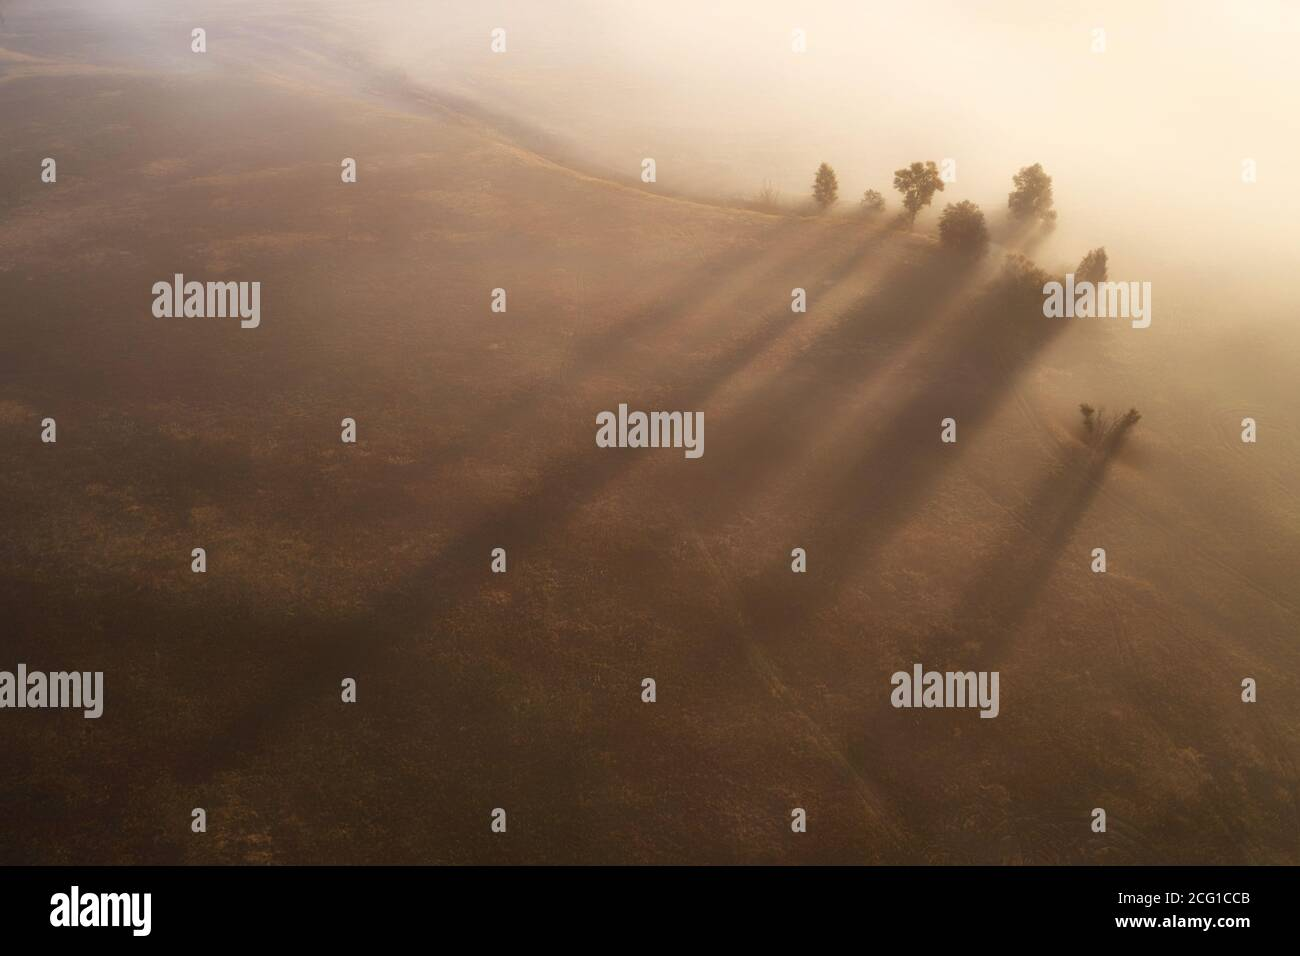 Several lone trees on a field in the fog Stock Photo